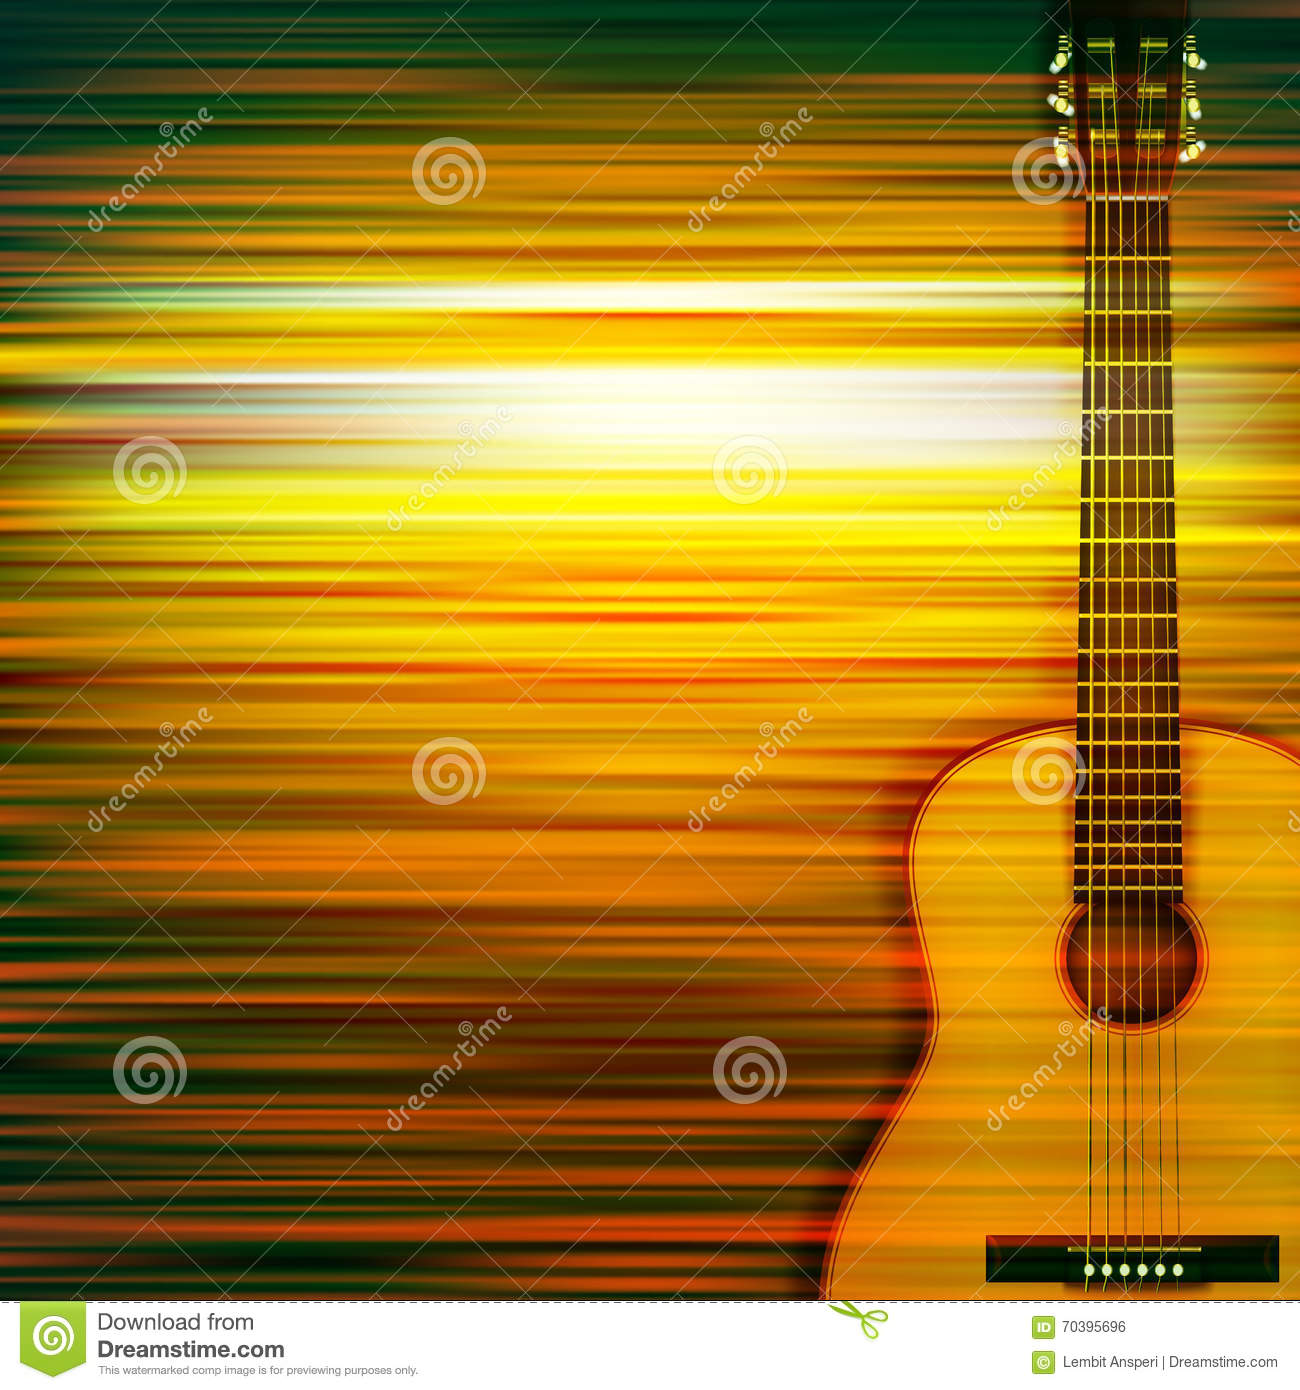 music time guitar abstract - photo #33